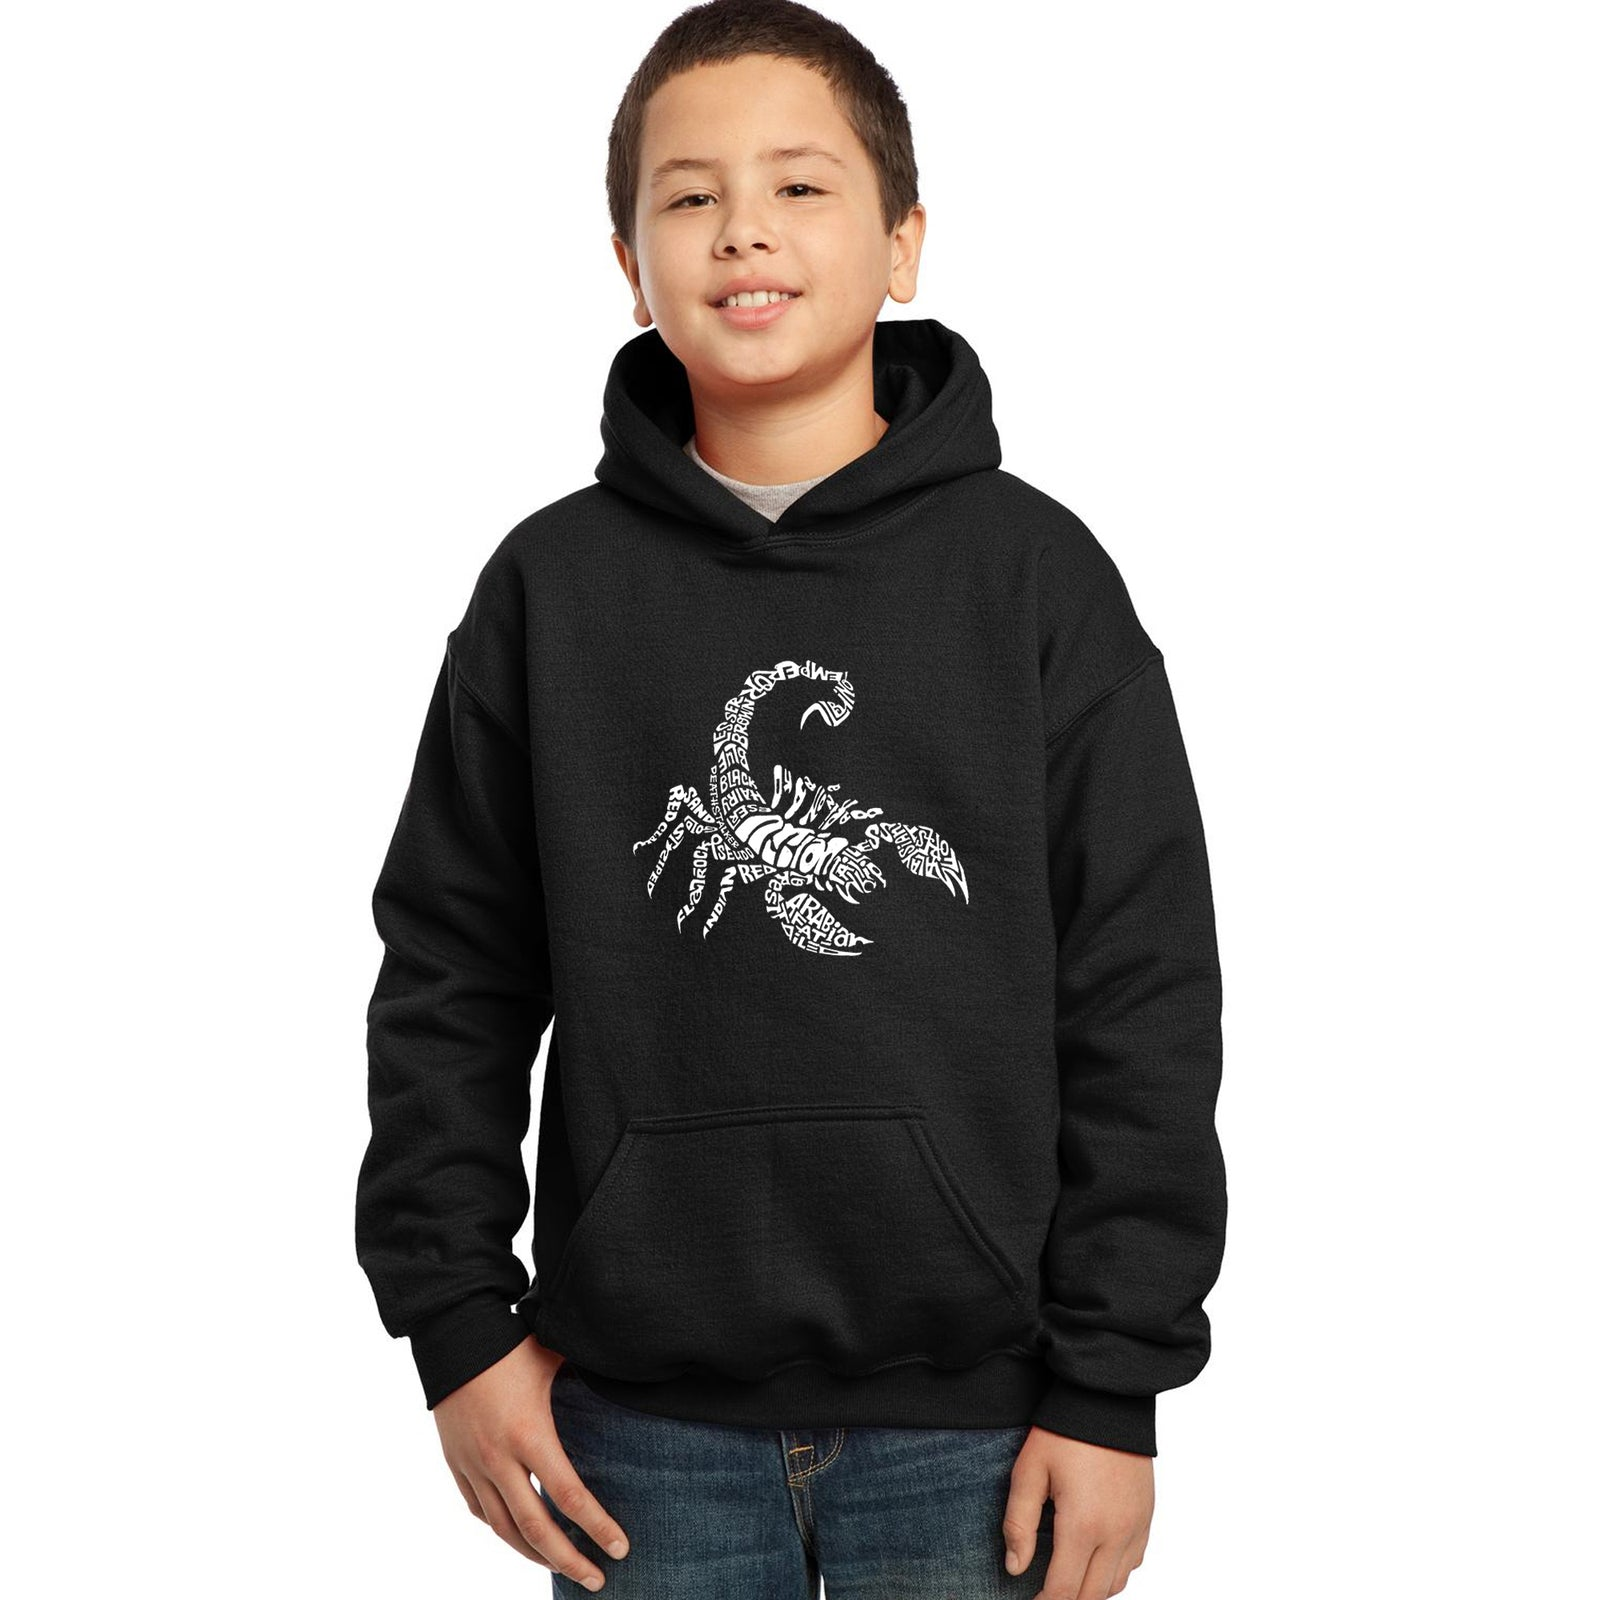 Boy's Word Art Hooded Sweatshirt - Types of Scorpions